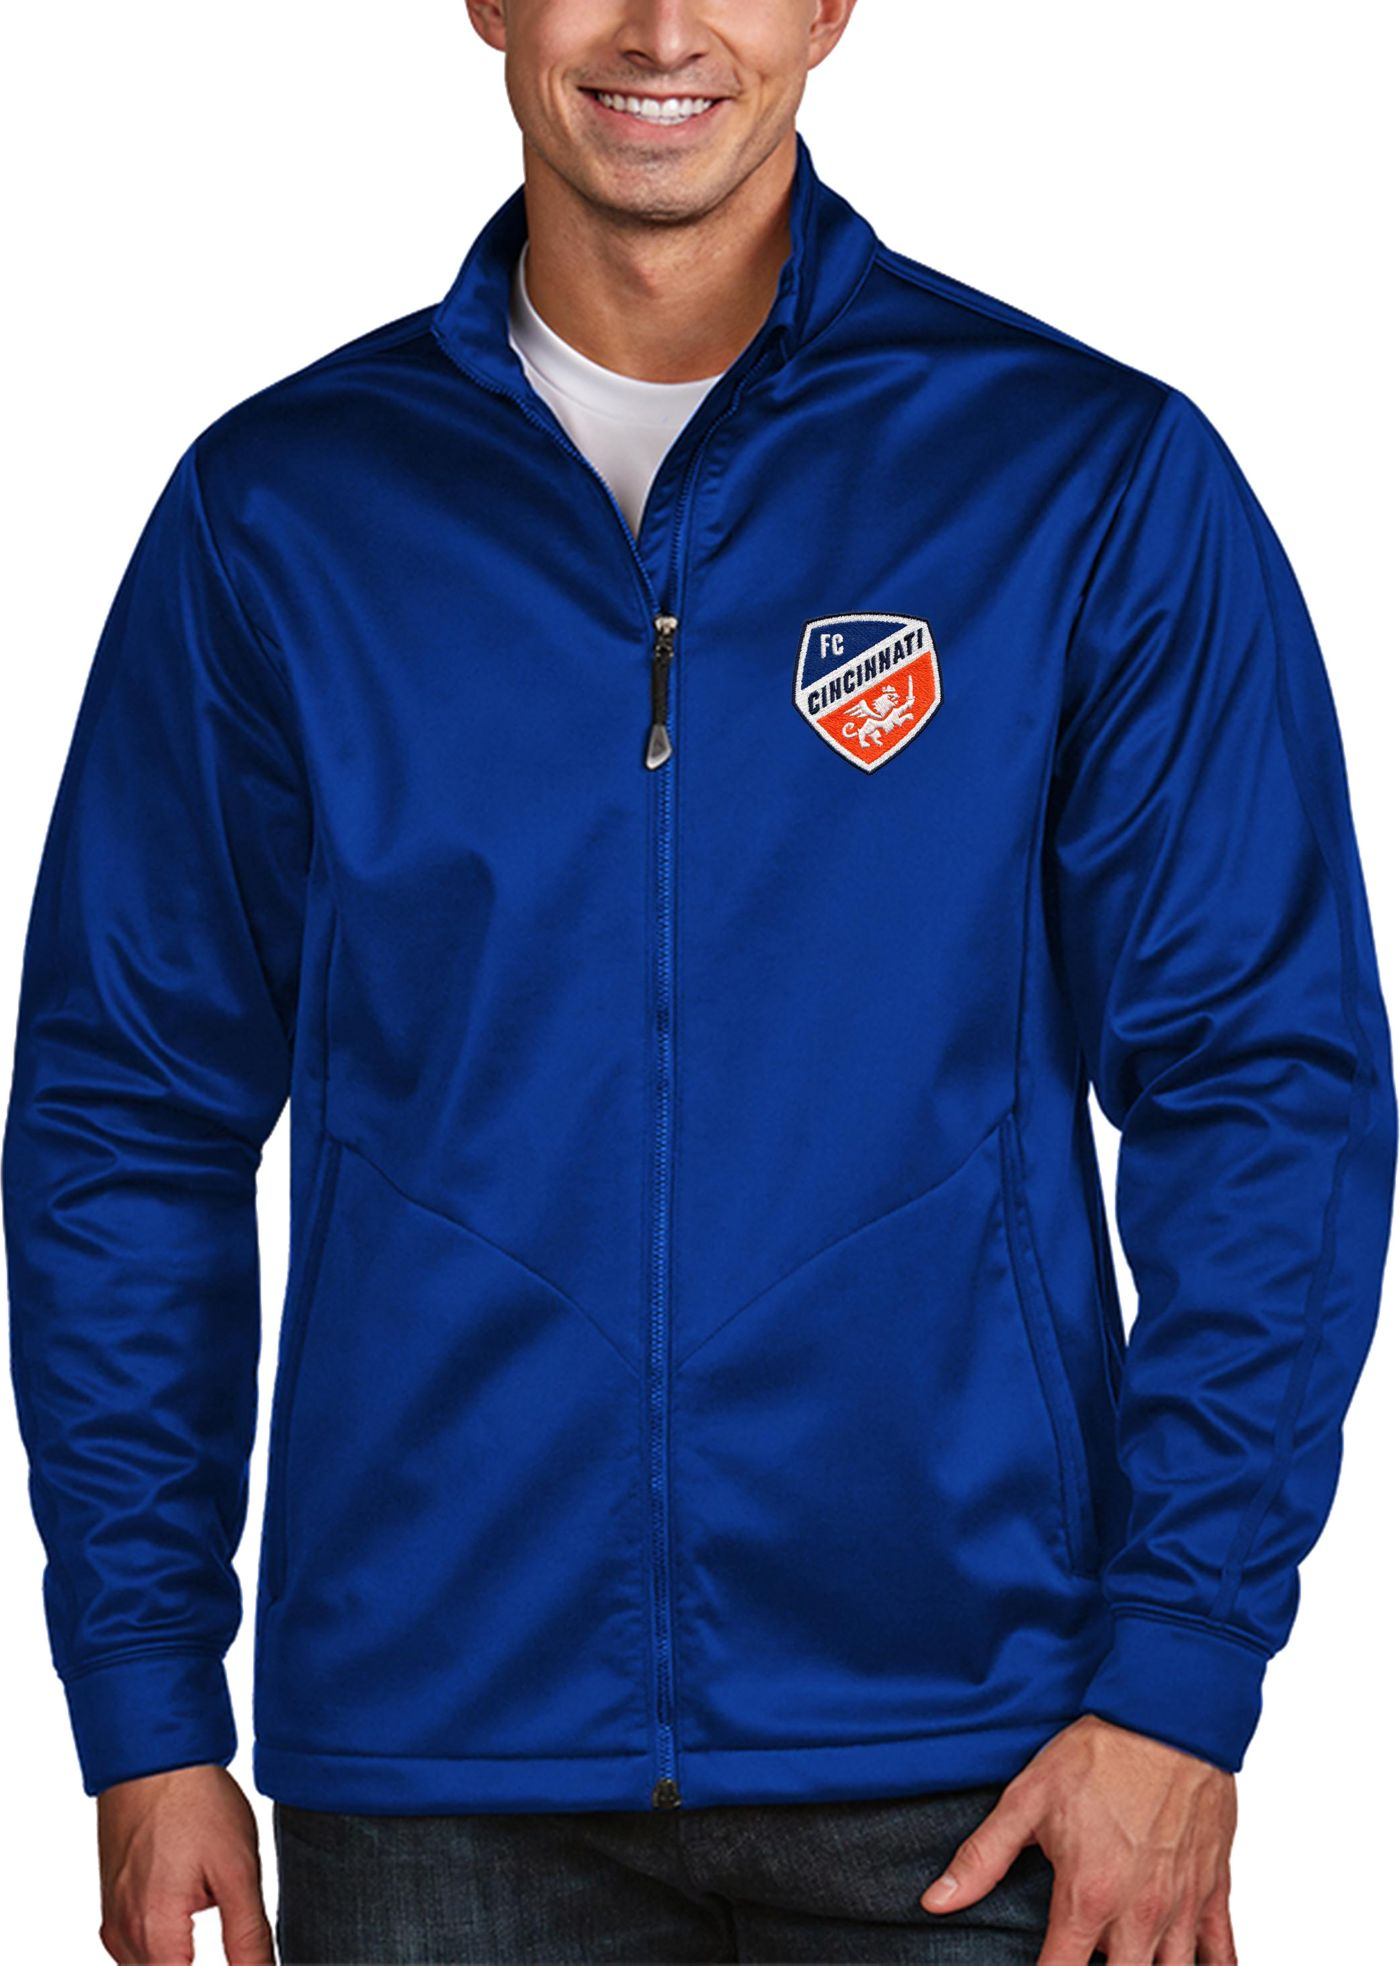 Antigua Men's FC Cincinnati Golf Royal Full-Zip Jacket